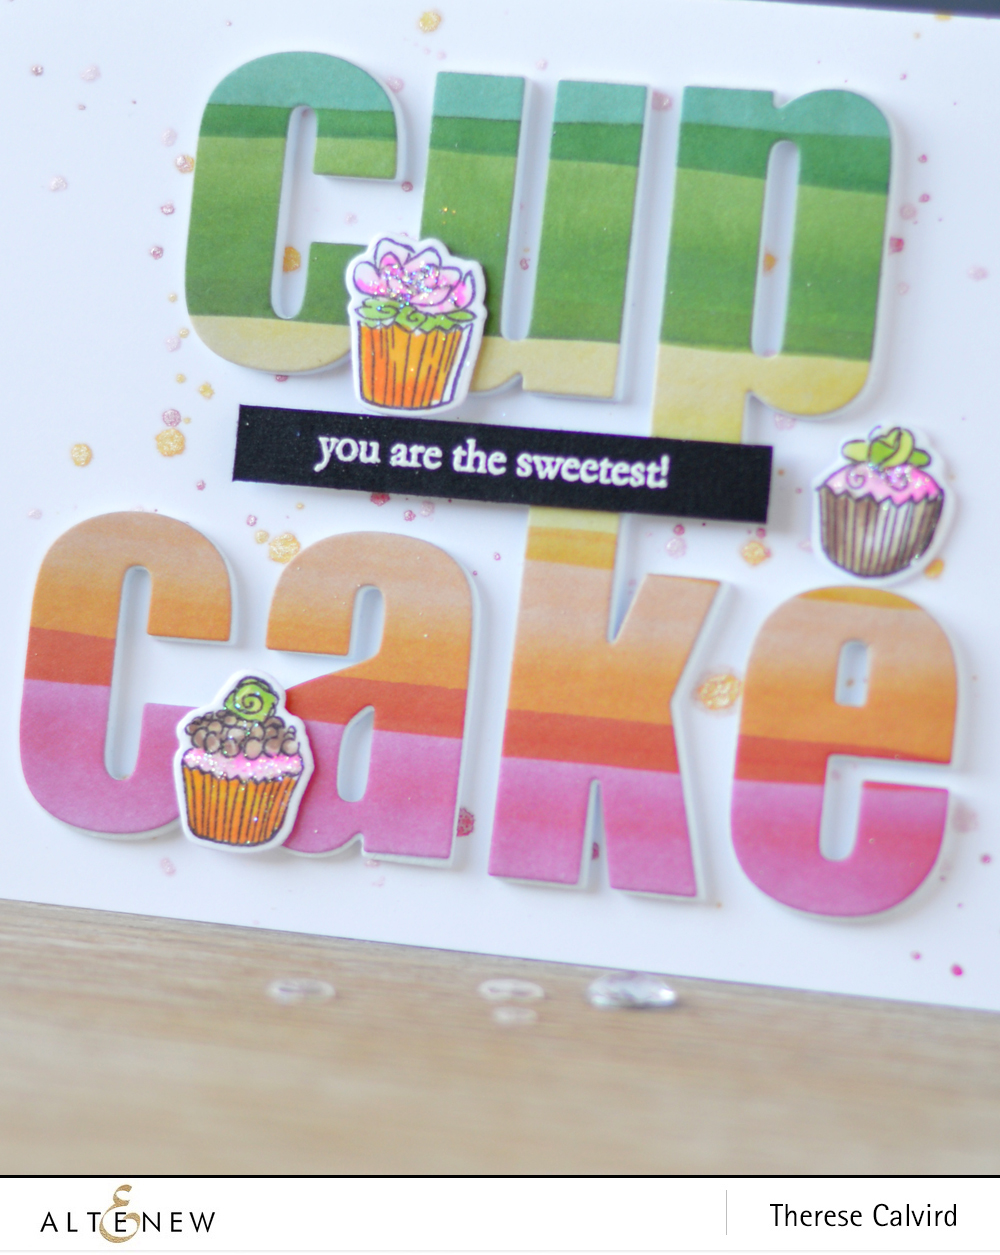 Altenew - Cake Love - Bold Alphabet Die - New Day Card Kit (card) 1 copy